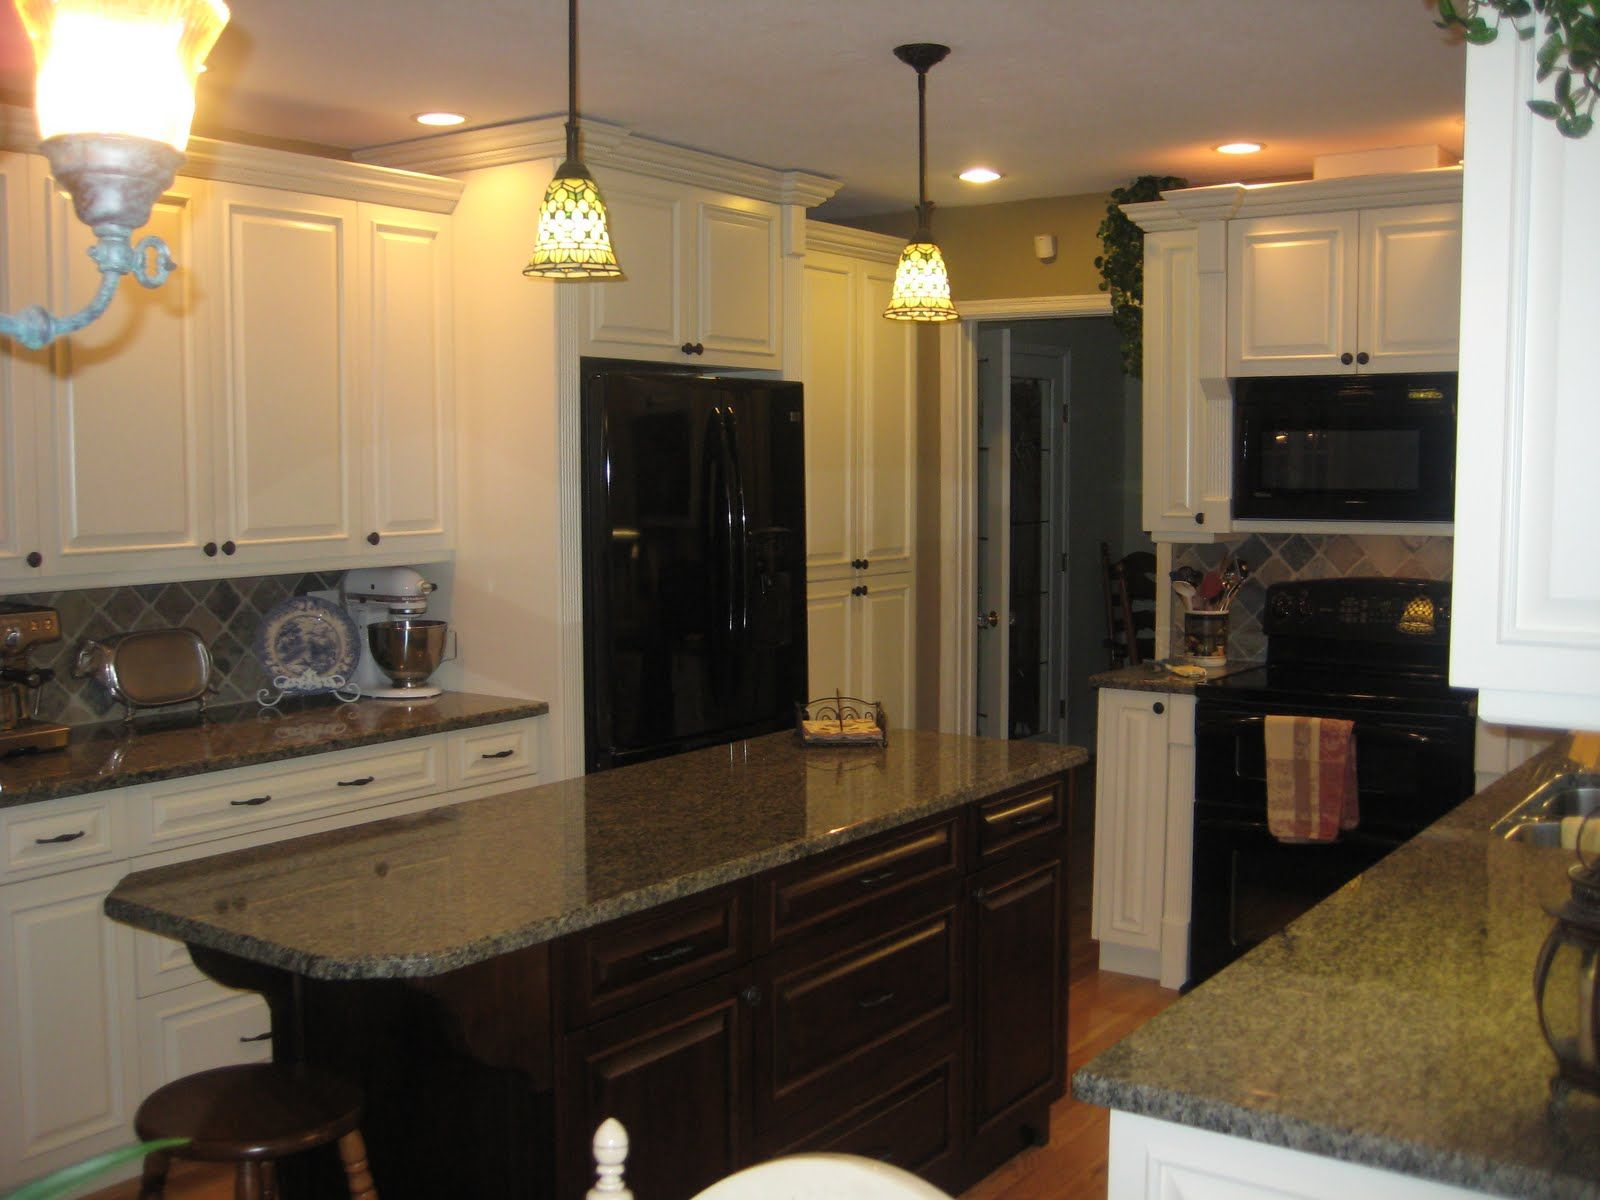 Remodelaholic White Kitchen Tour Guest Black Countertops Kitchen Countertops Granite Colors Kitchen Cabinets With Black Appliances